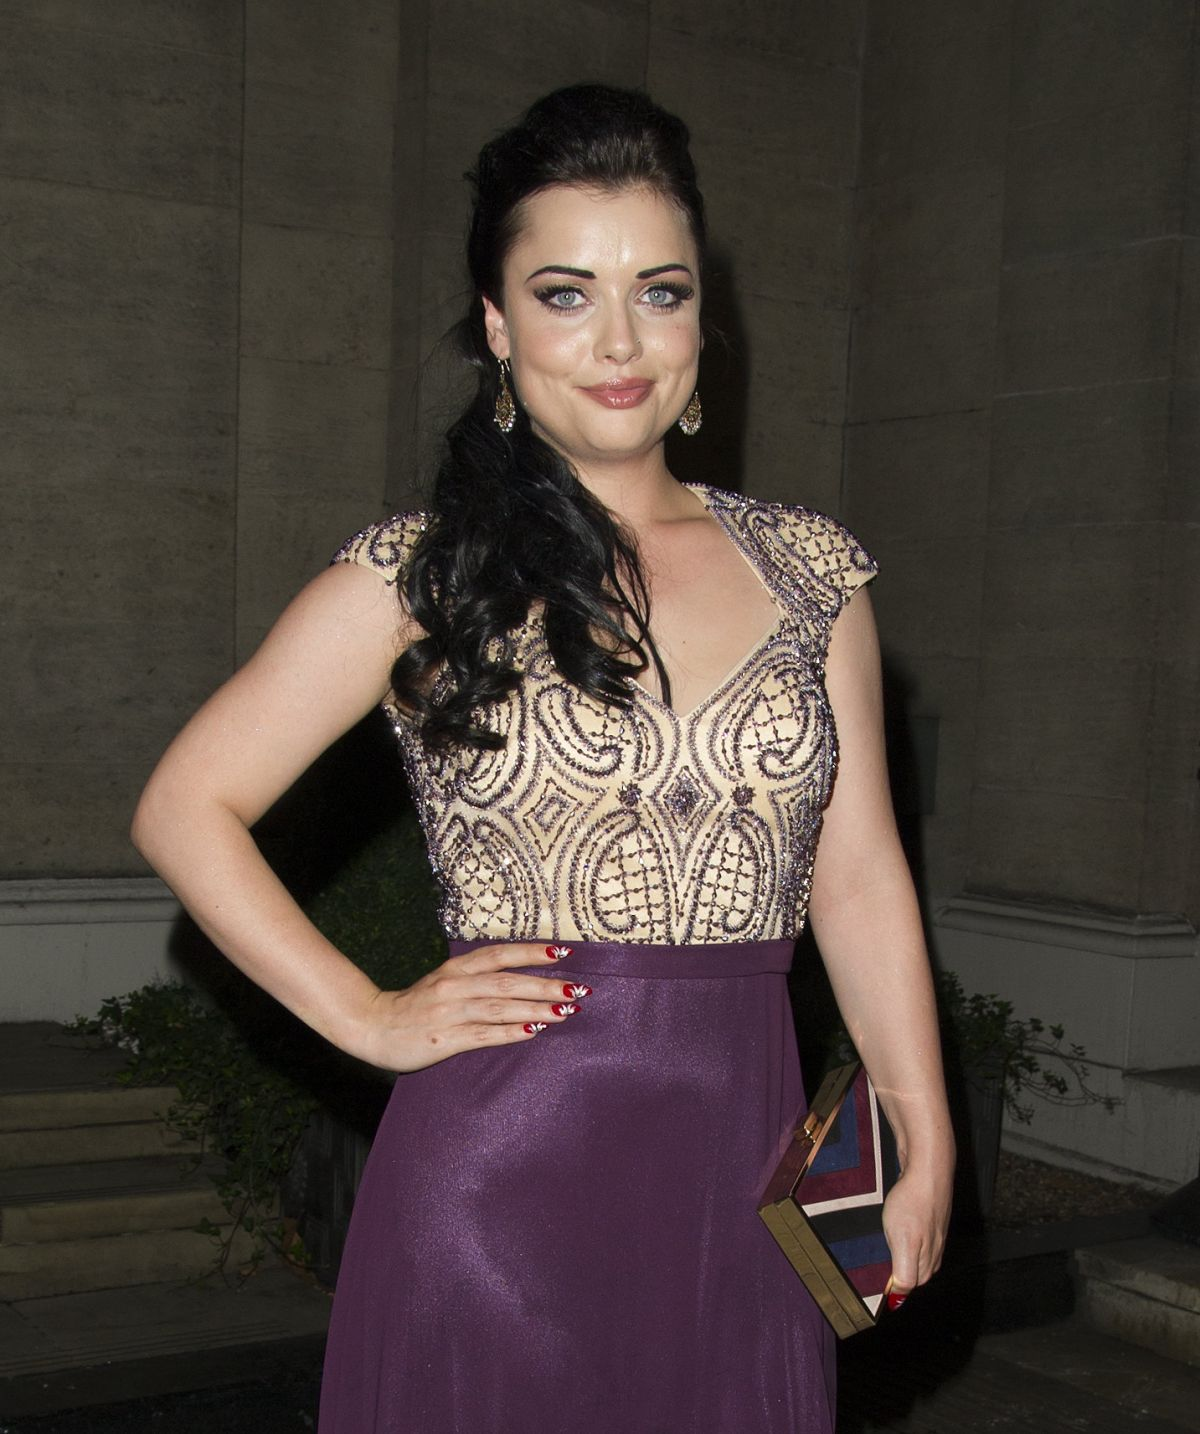 HQ Photos of 'East Enders' actress Shona Mcgarty At 2016 Animal Hero Awards In London